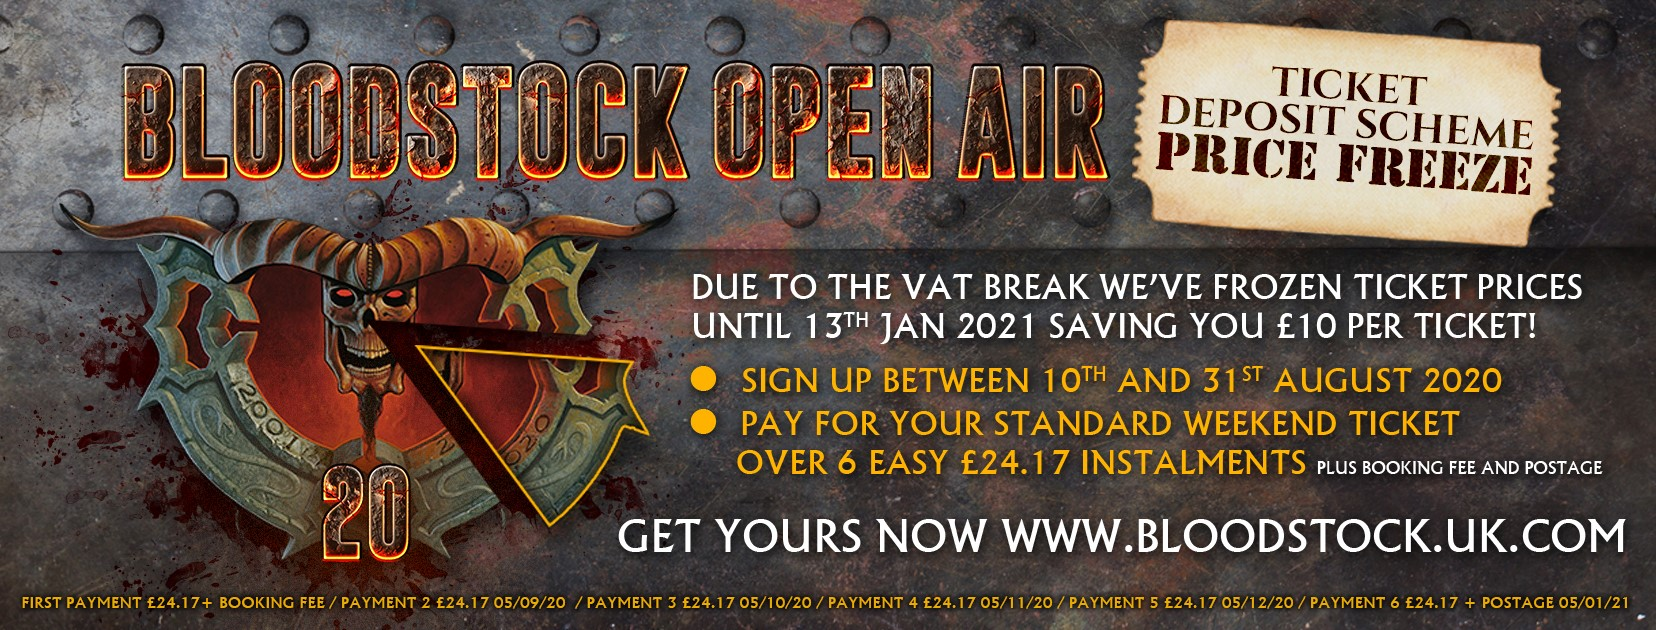 News: Bloodstock Open Air Festival To Pass On Vat Saving To Customers